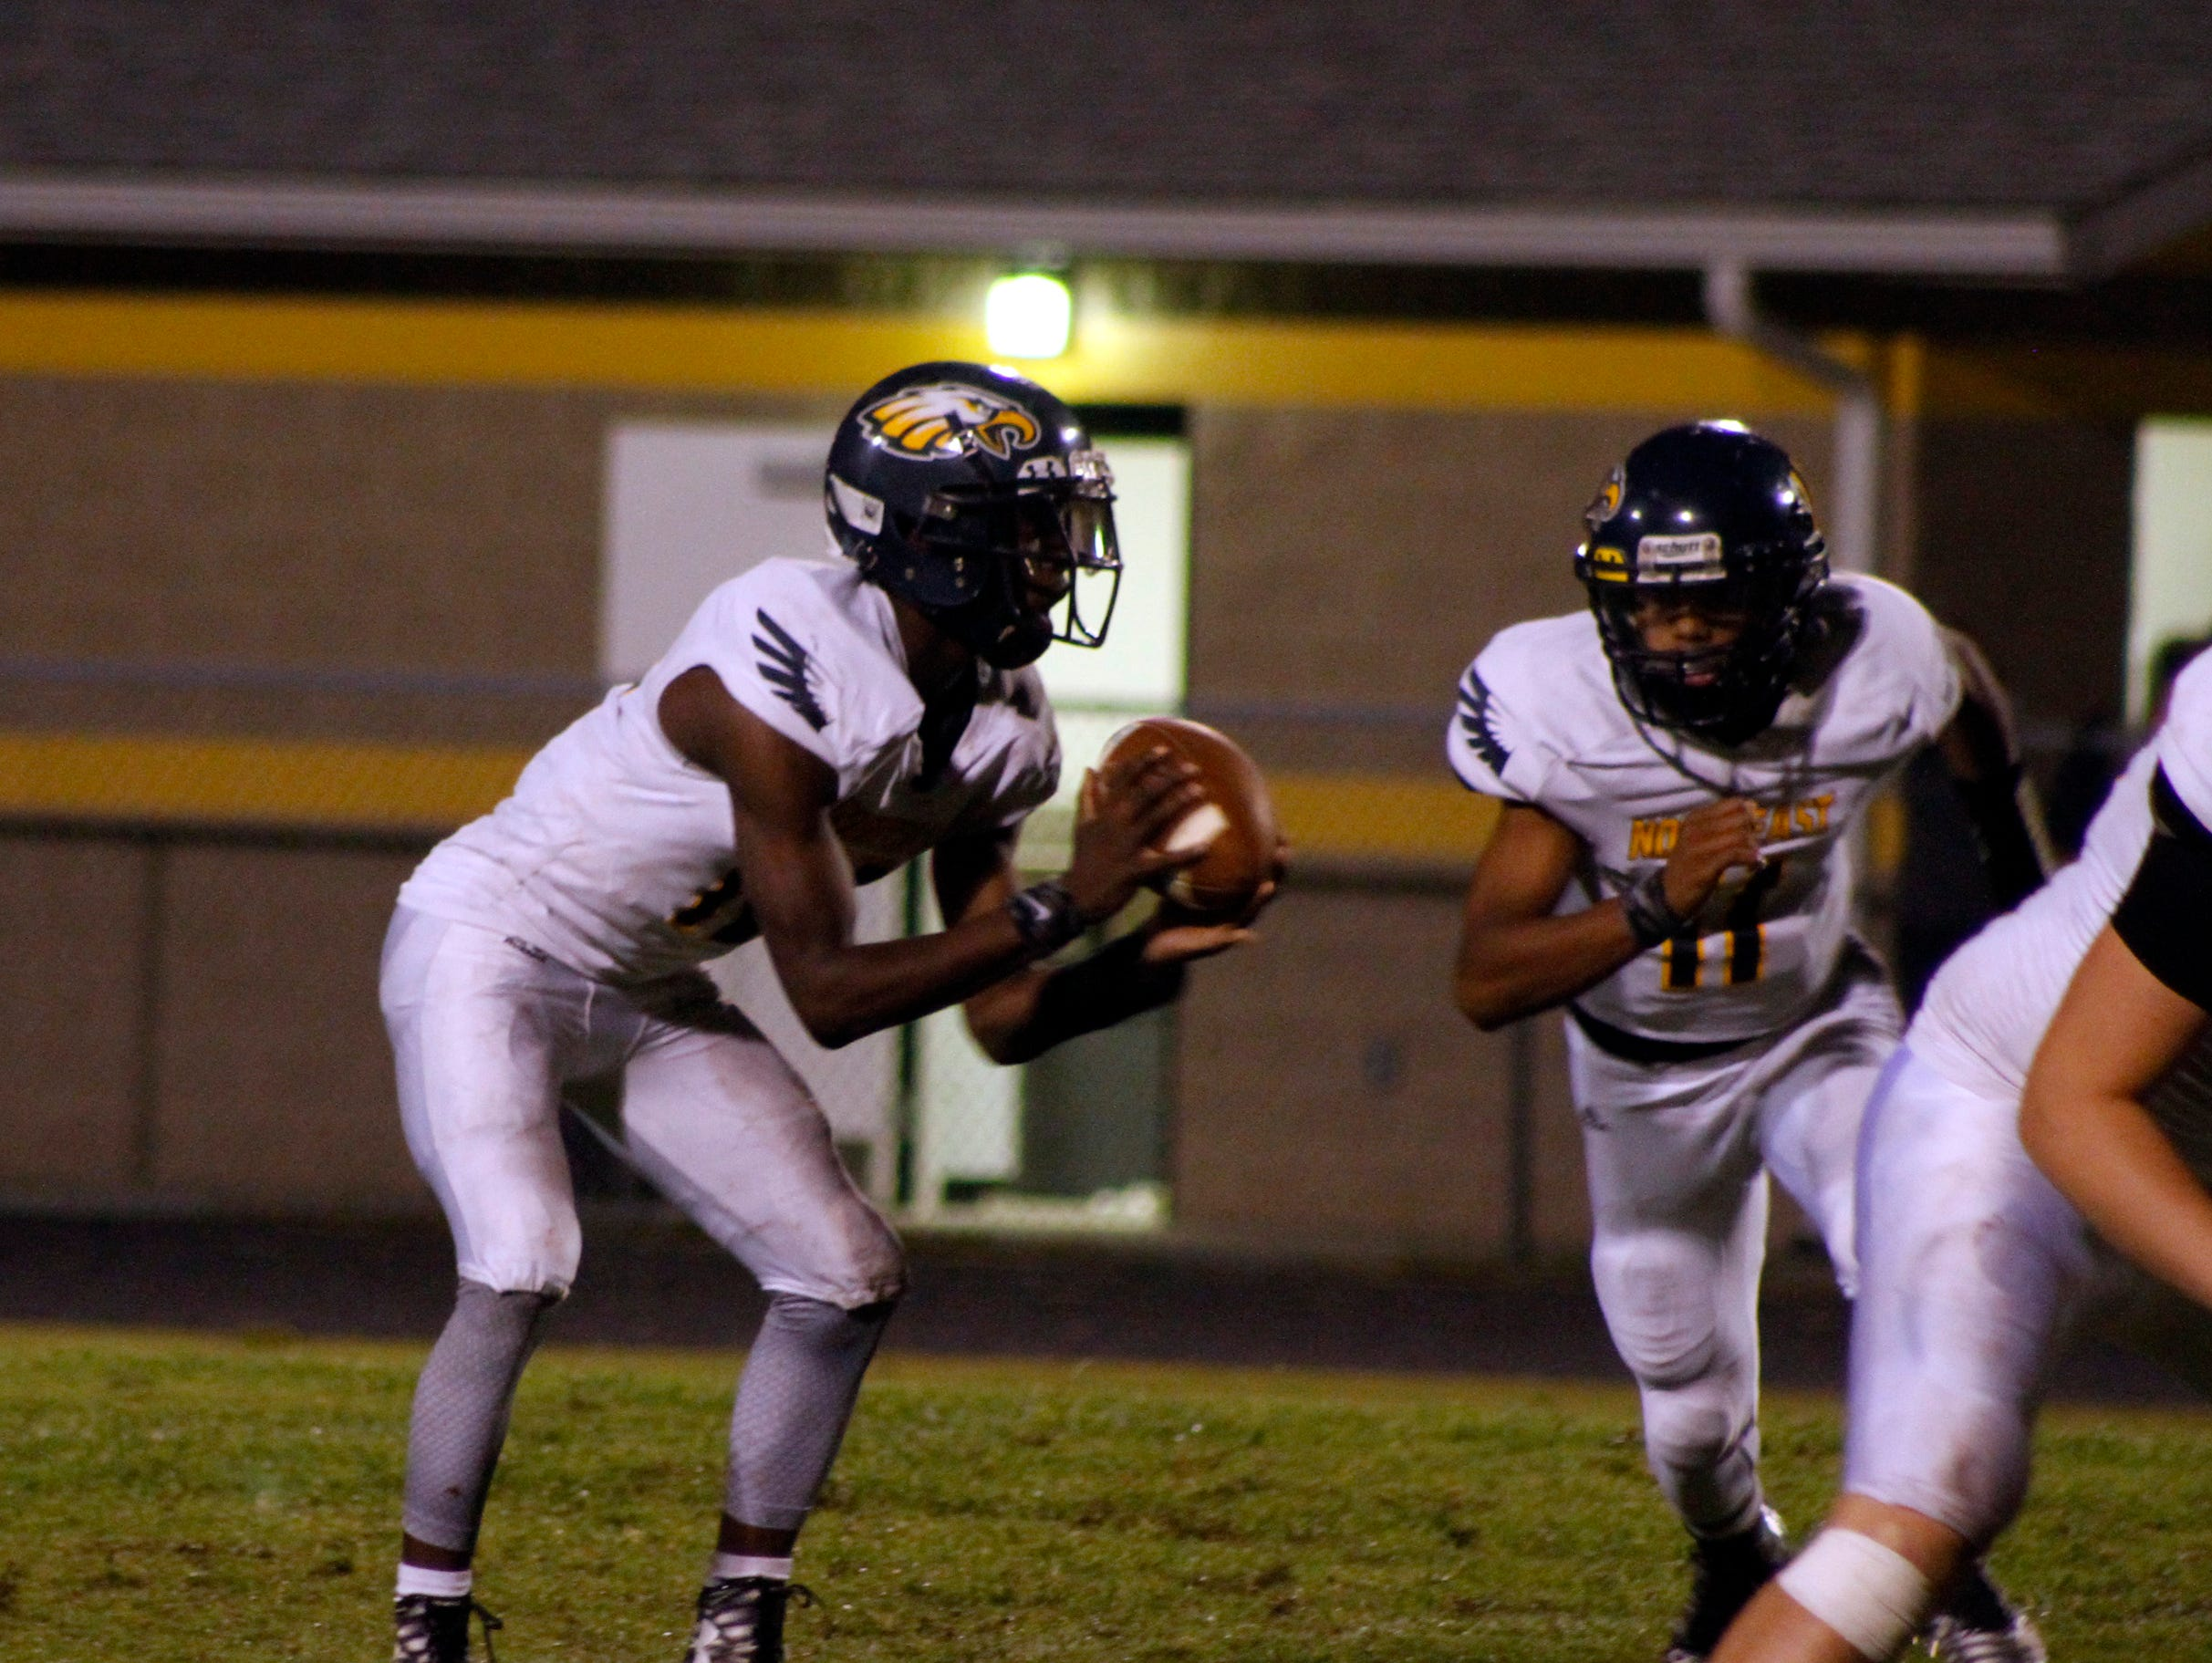 Northeast's Quinton Cross (Left) scored two touchdowns and Gus Antoine (right) scored one in a 34-6 win over the Knights Friday night.